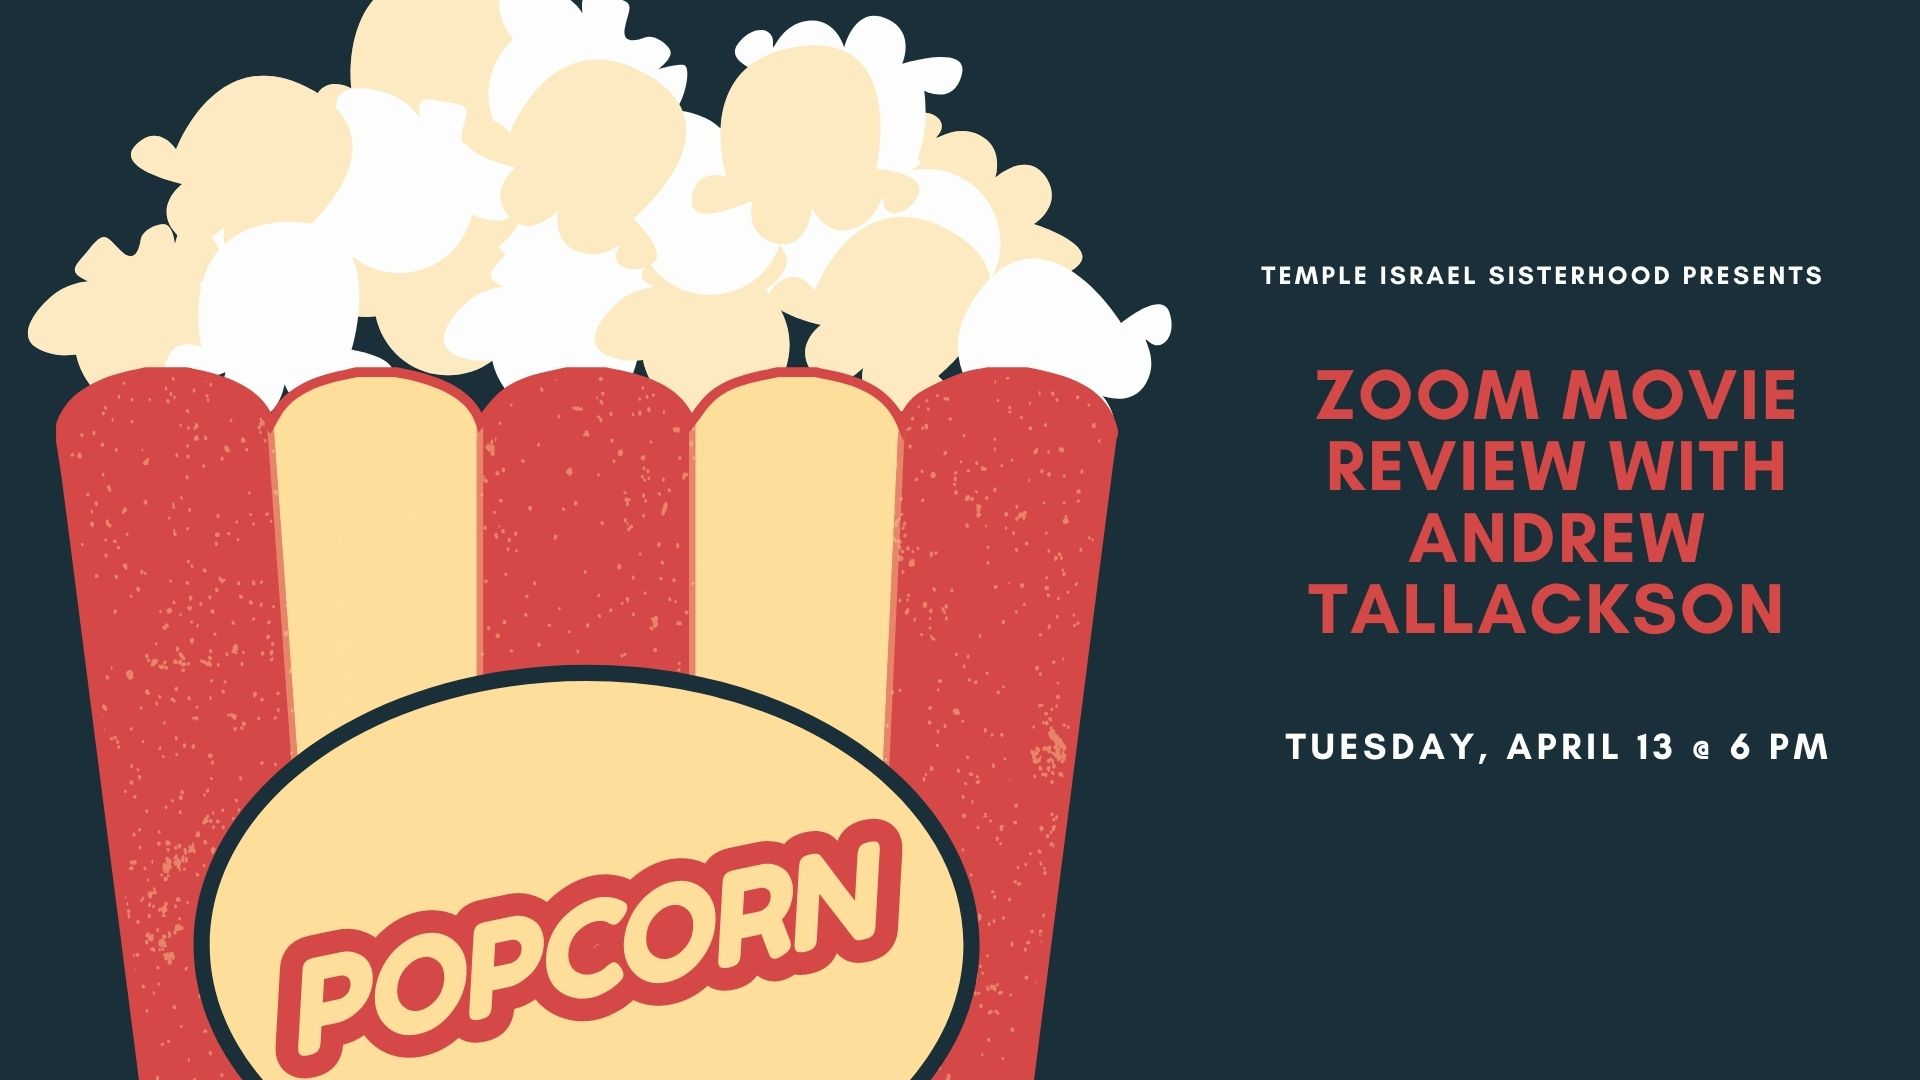 Zoom Movie Review with Andrew Tallackson